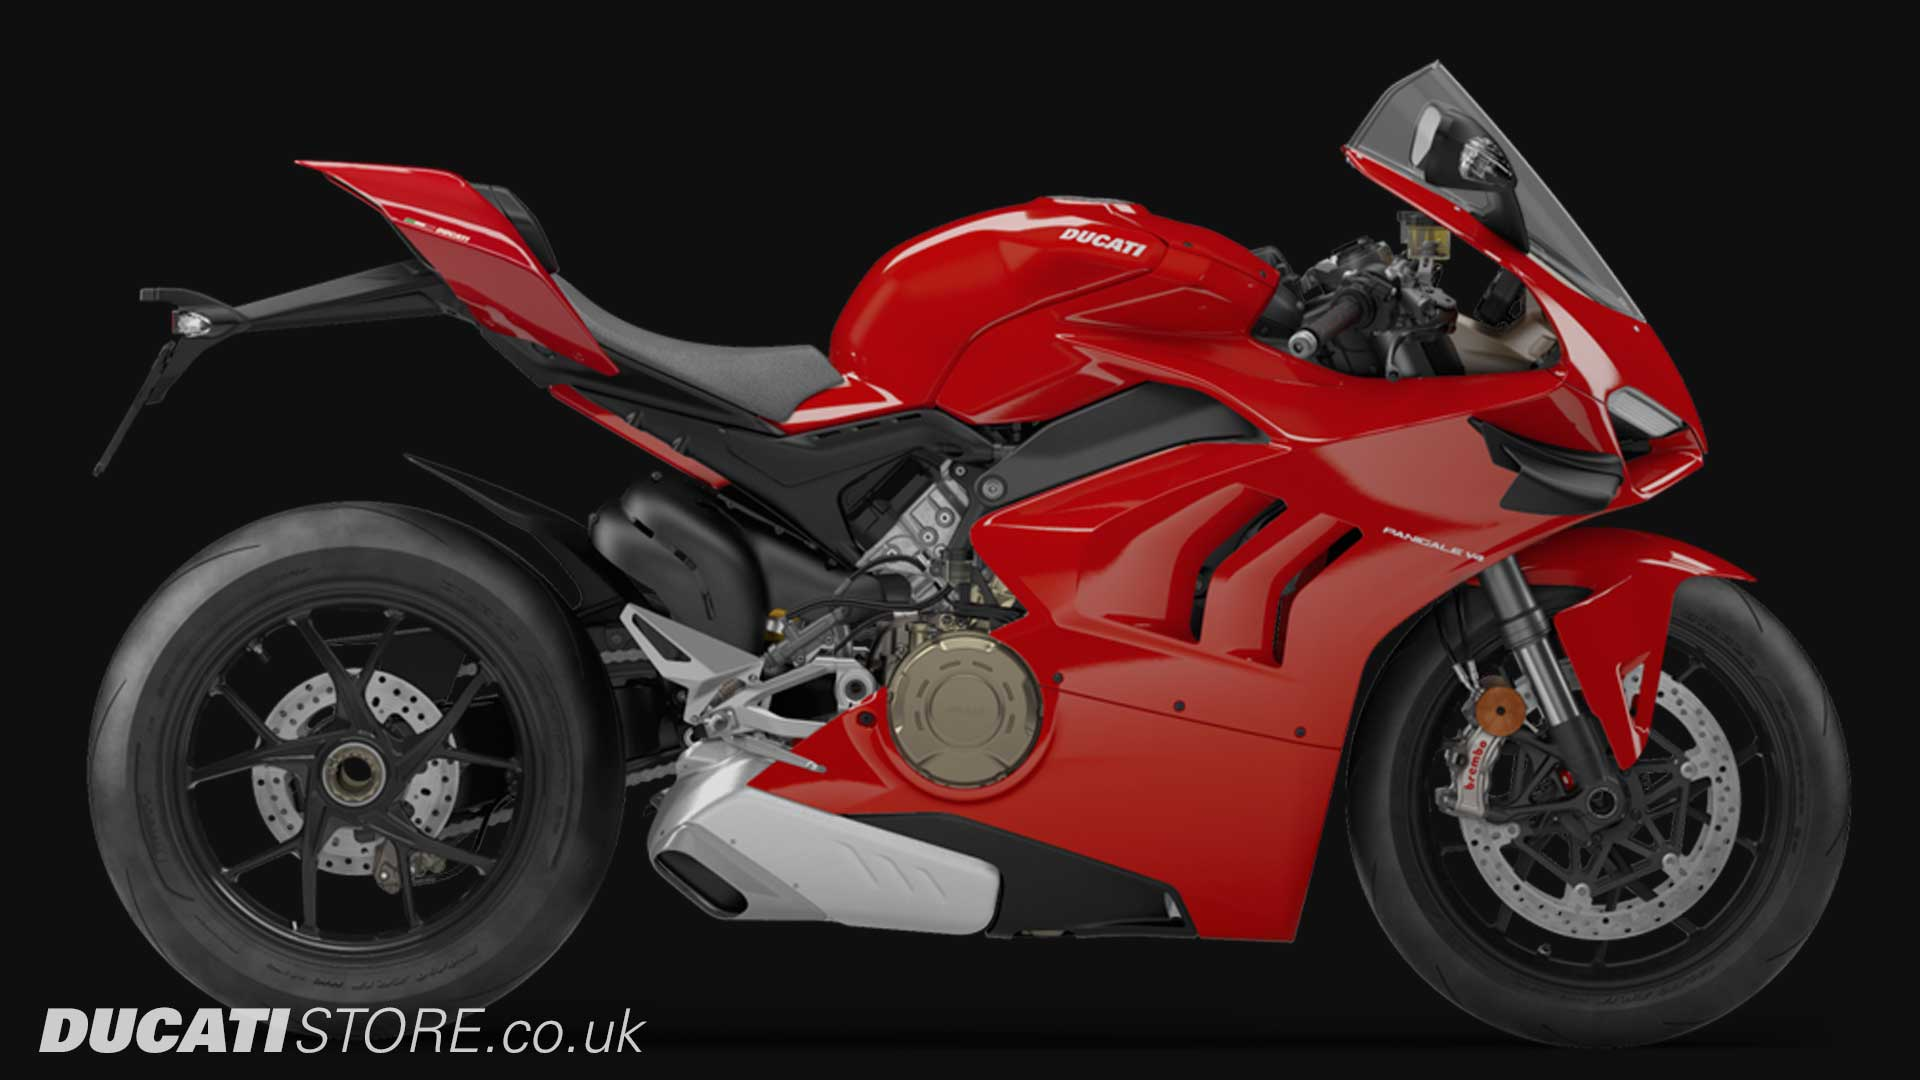 2020 Ducati Panigale V4 for sale at Ducati Preston, Lancashire, Scotland